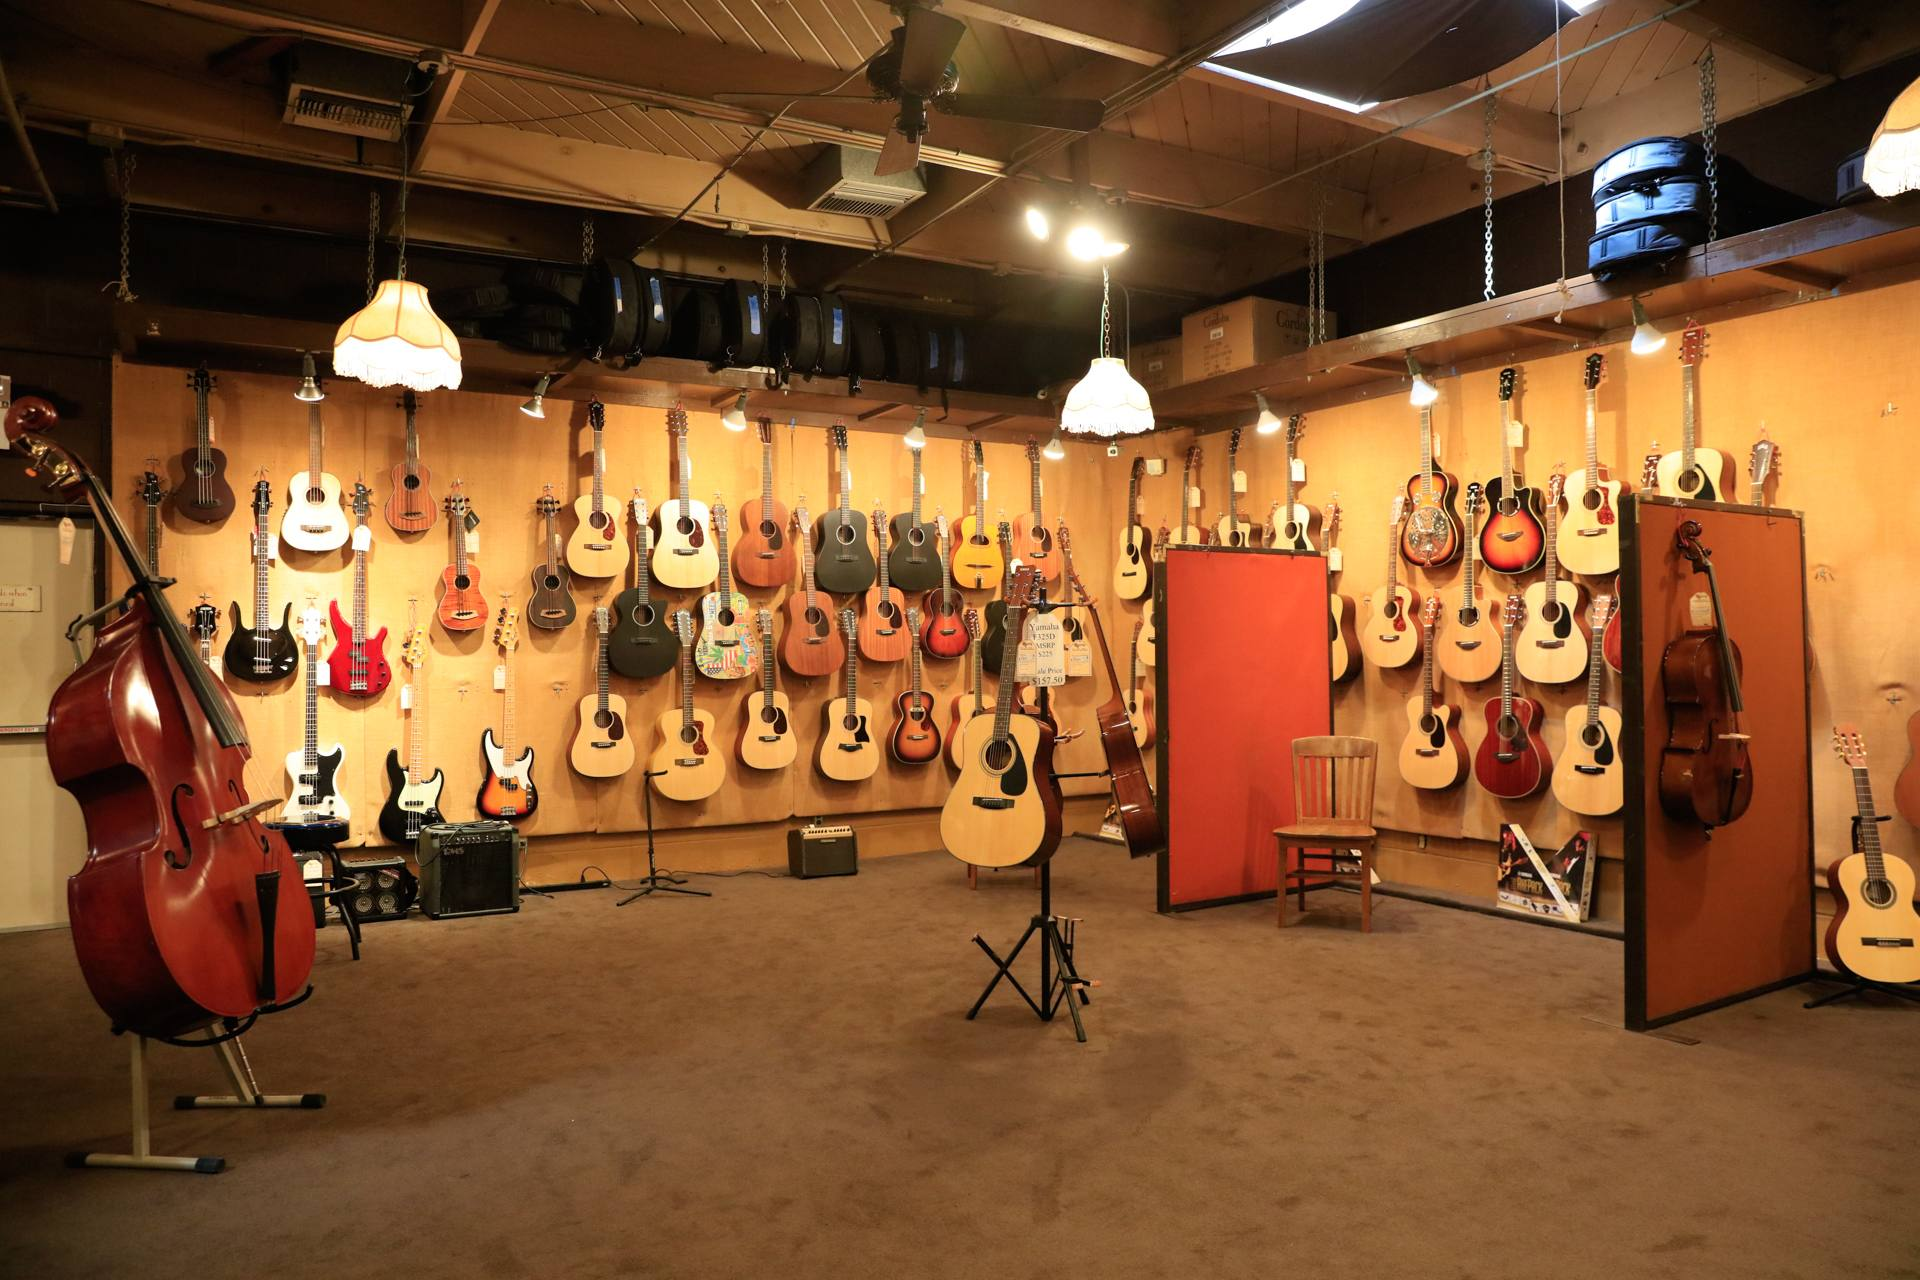 McCabe's Guitar Shop in Santa Monica